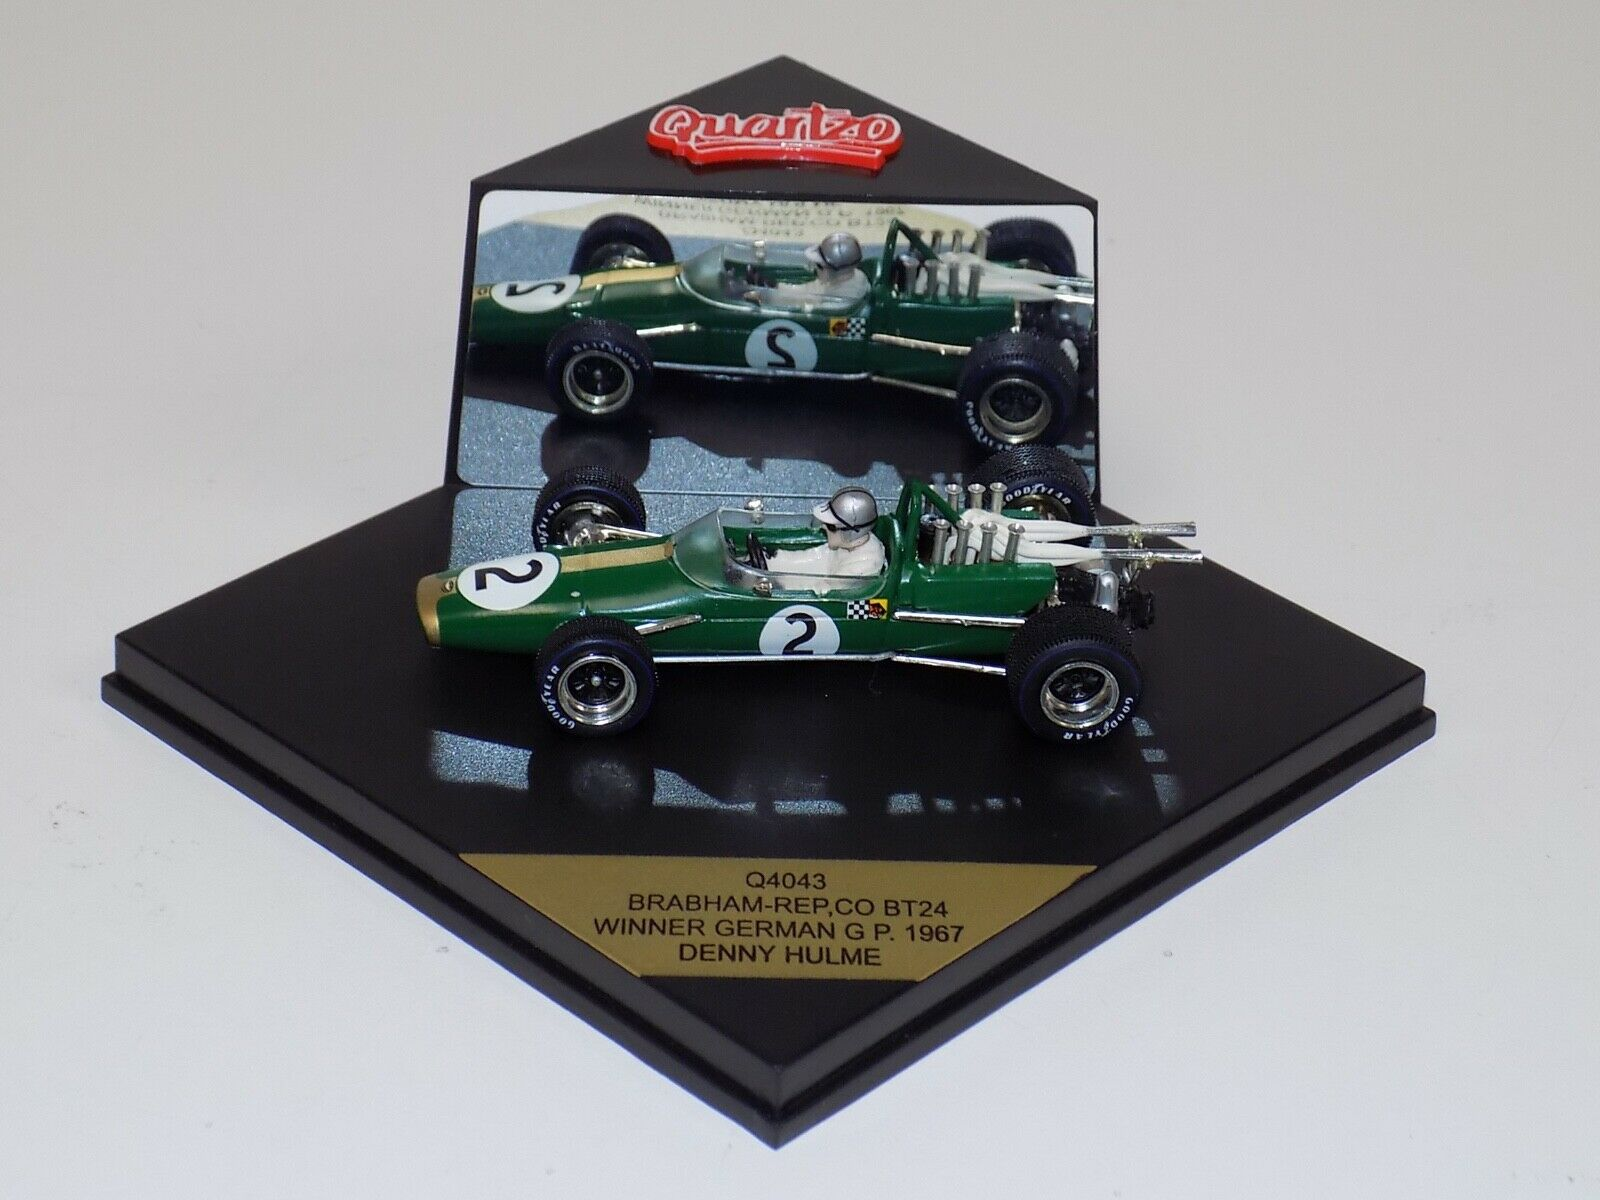 1 43 Quartzo F1 Brabham Rep,co BT24 Car Winner 1967 German GP D.Hulme Q4043